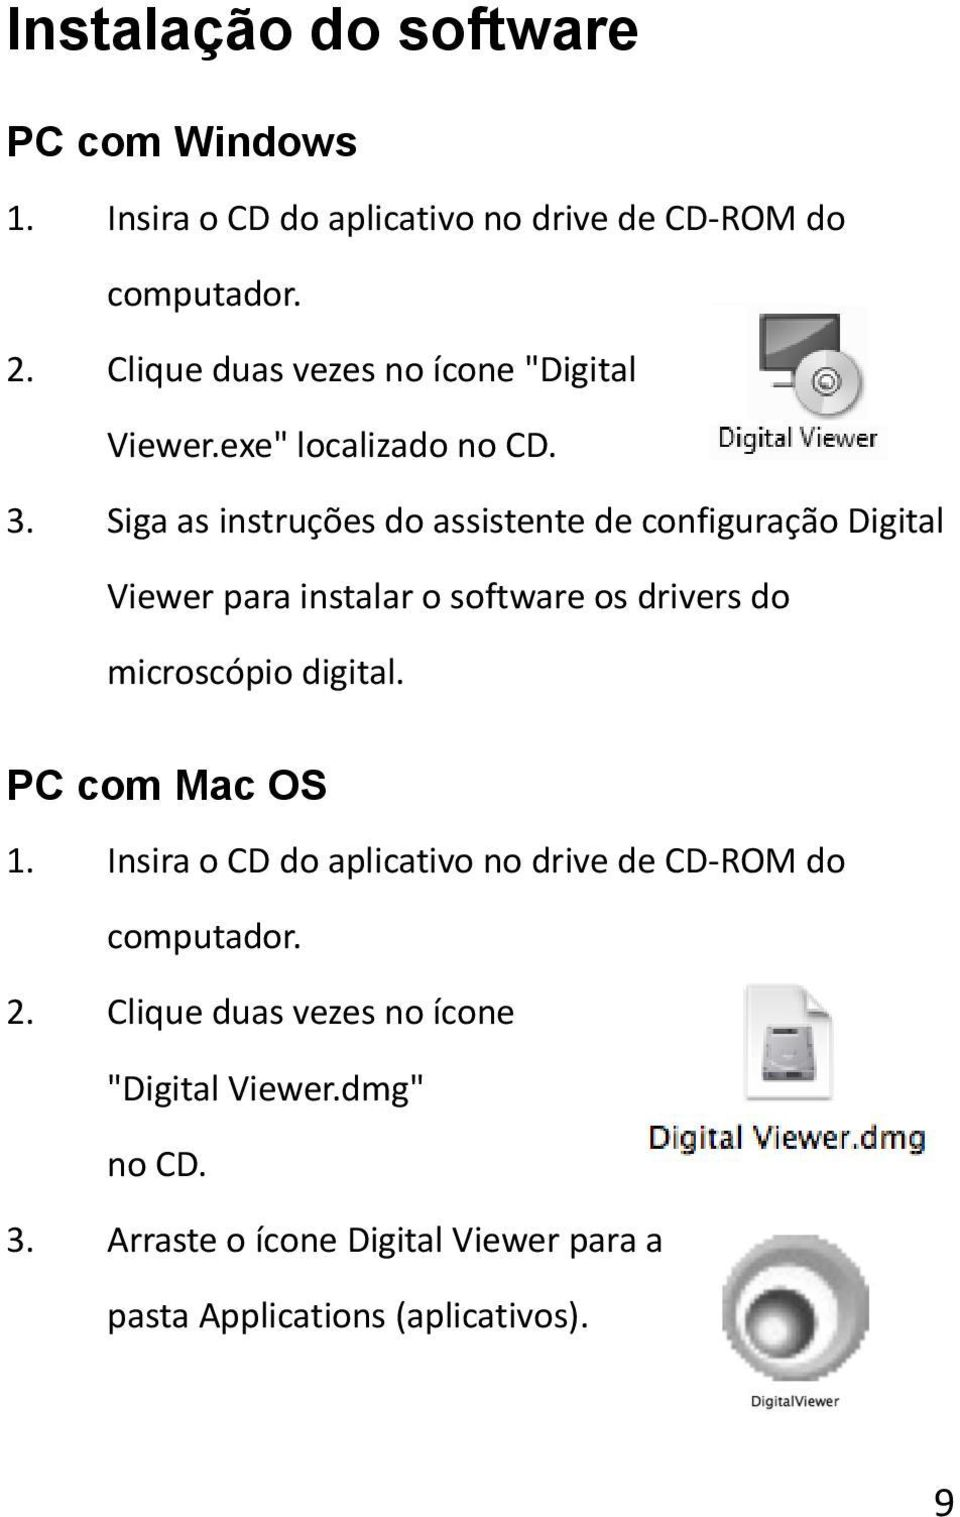 Siga as instruções do assistente de configuração Digital Viewer para instalar o software os drivers do microscópio digital.